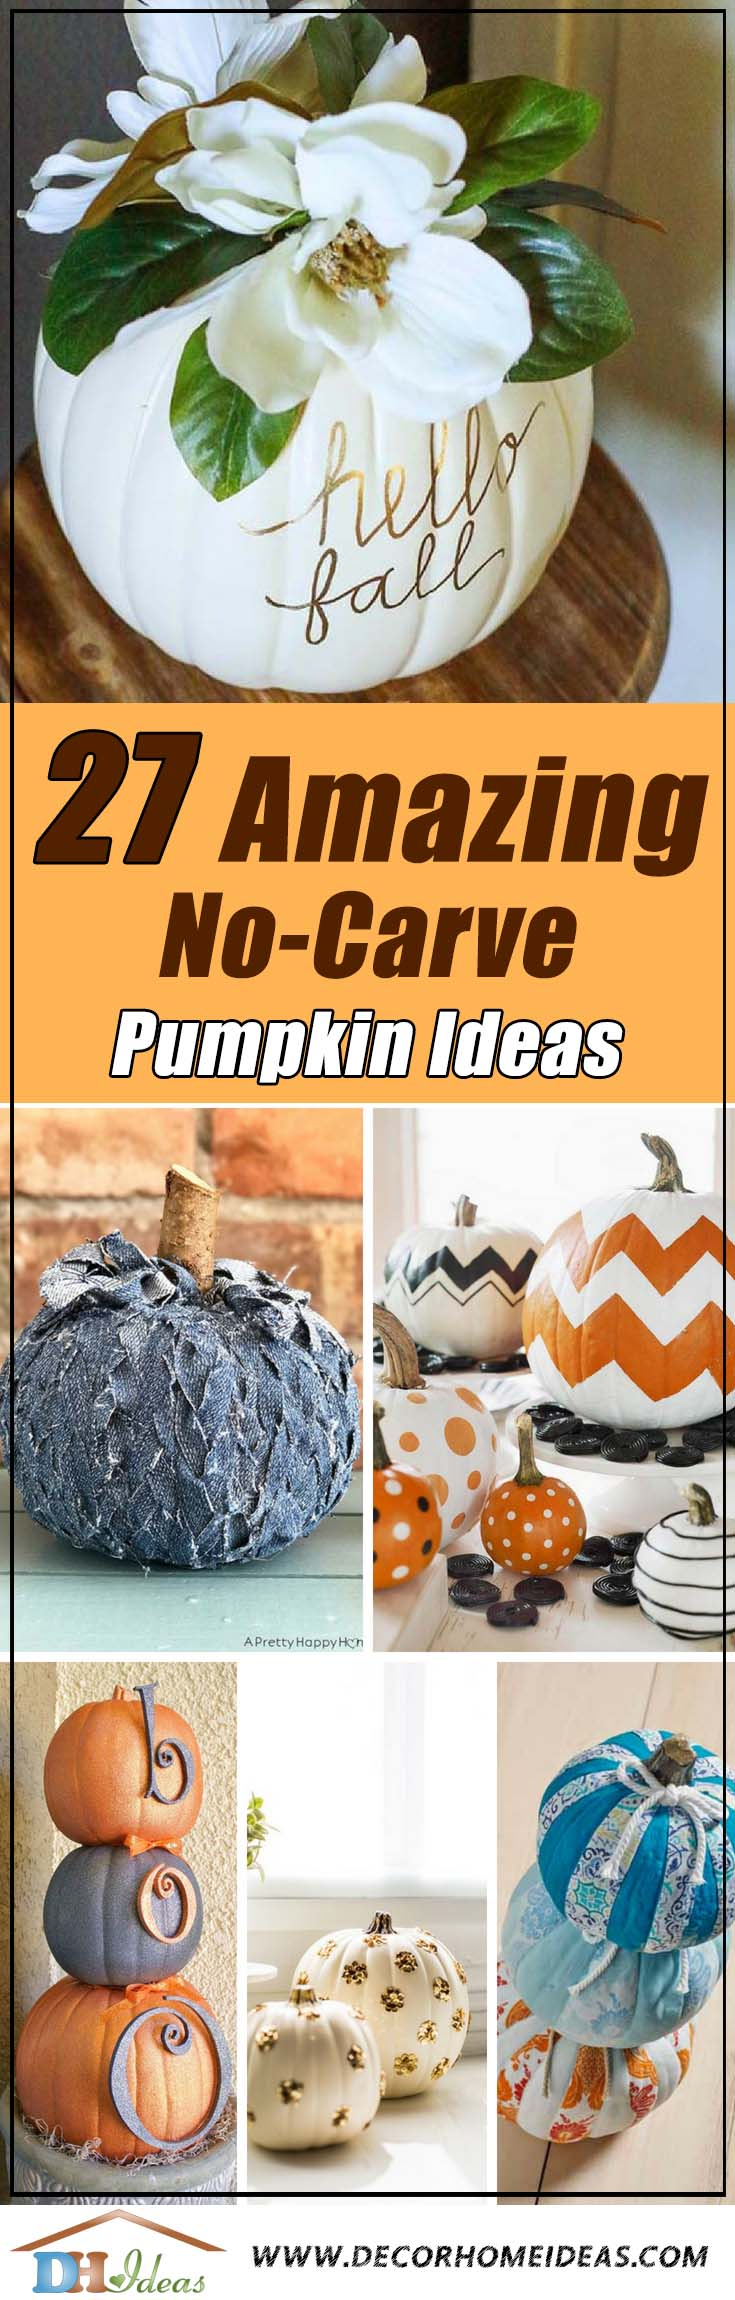 No-Carve Pumpkin Ideas #pumpkin #falldecor #nocarve #homedecor #decorhomeideas